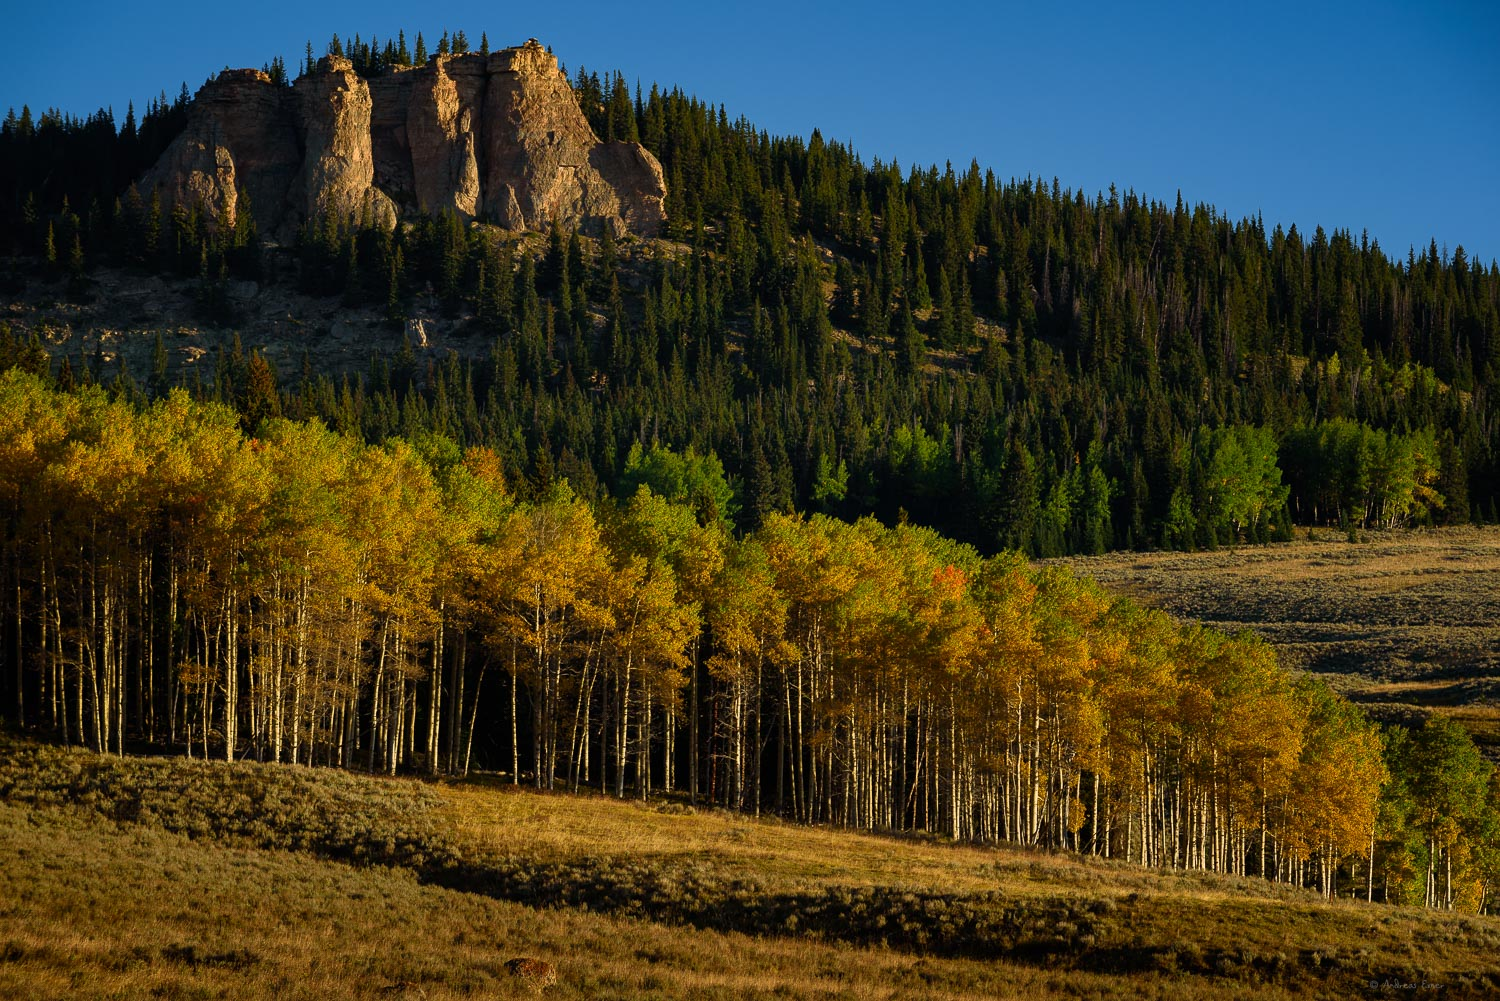 Morning in the Bighorn Mountains, Wyoming